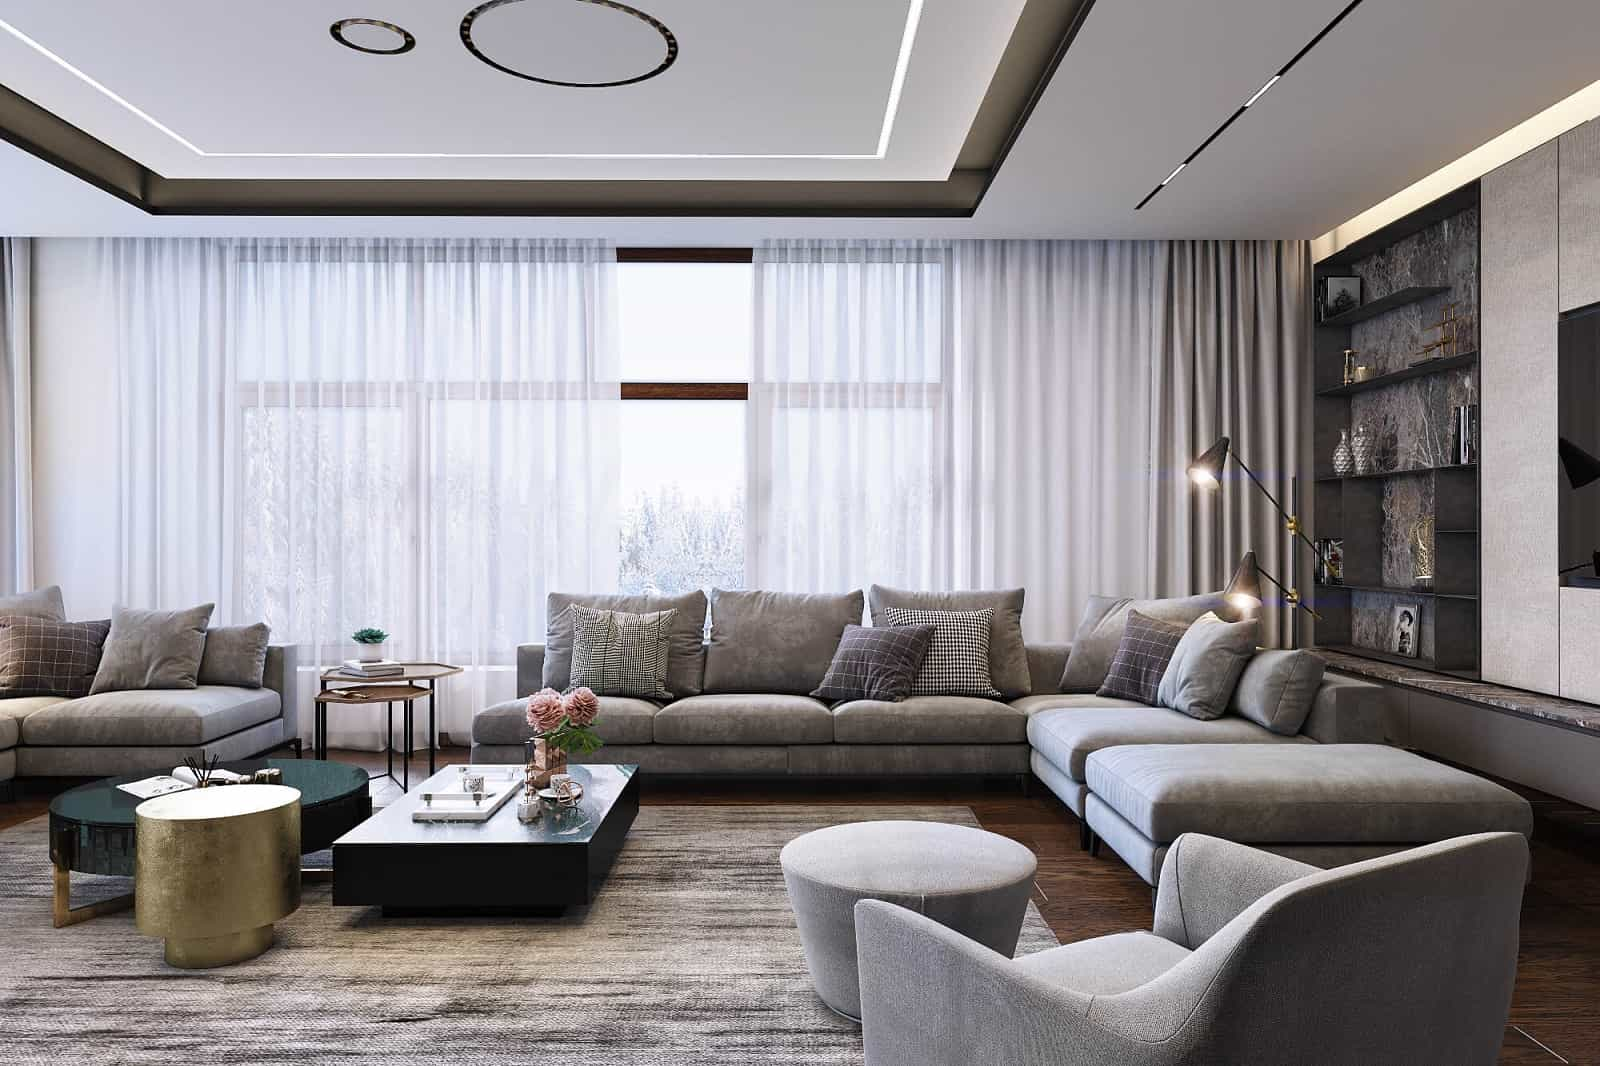 Selling Your House? Here Are 6 Ways to Make It More Attractive to Buyers. Great idea of hidden curtain rod and automatic mechanism for large modern designed living room with gray furnishings